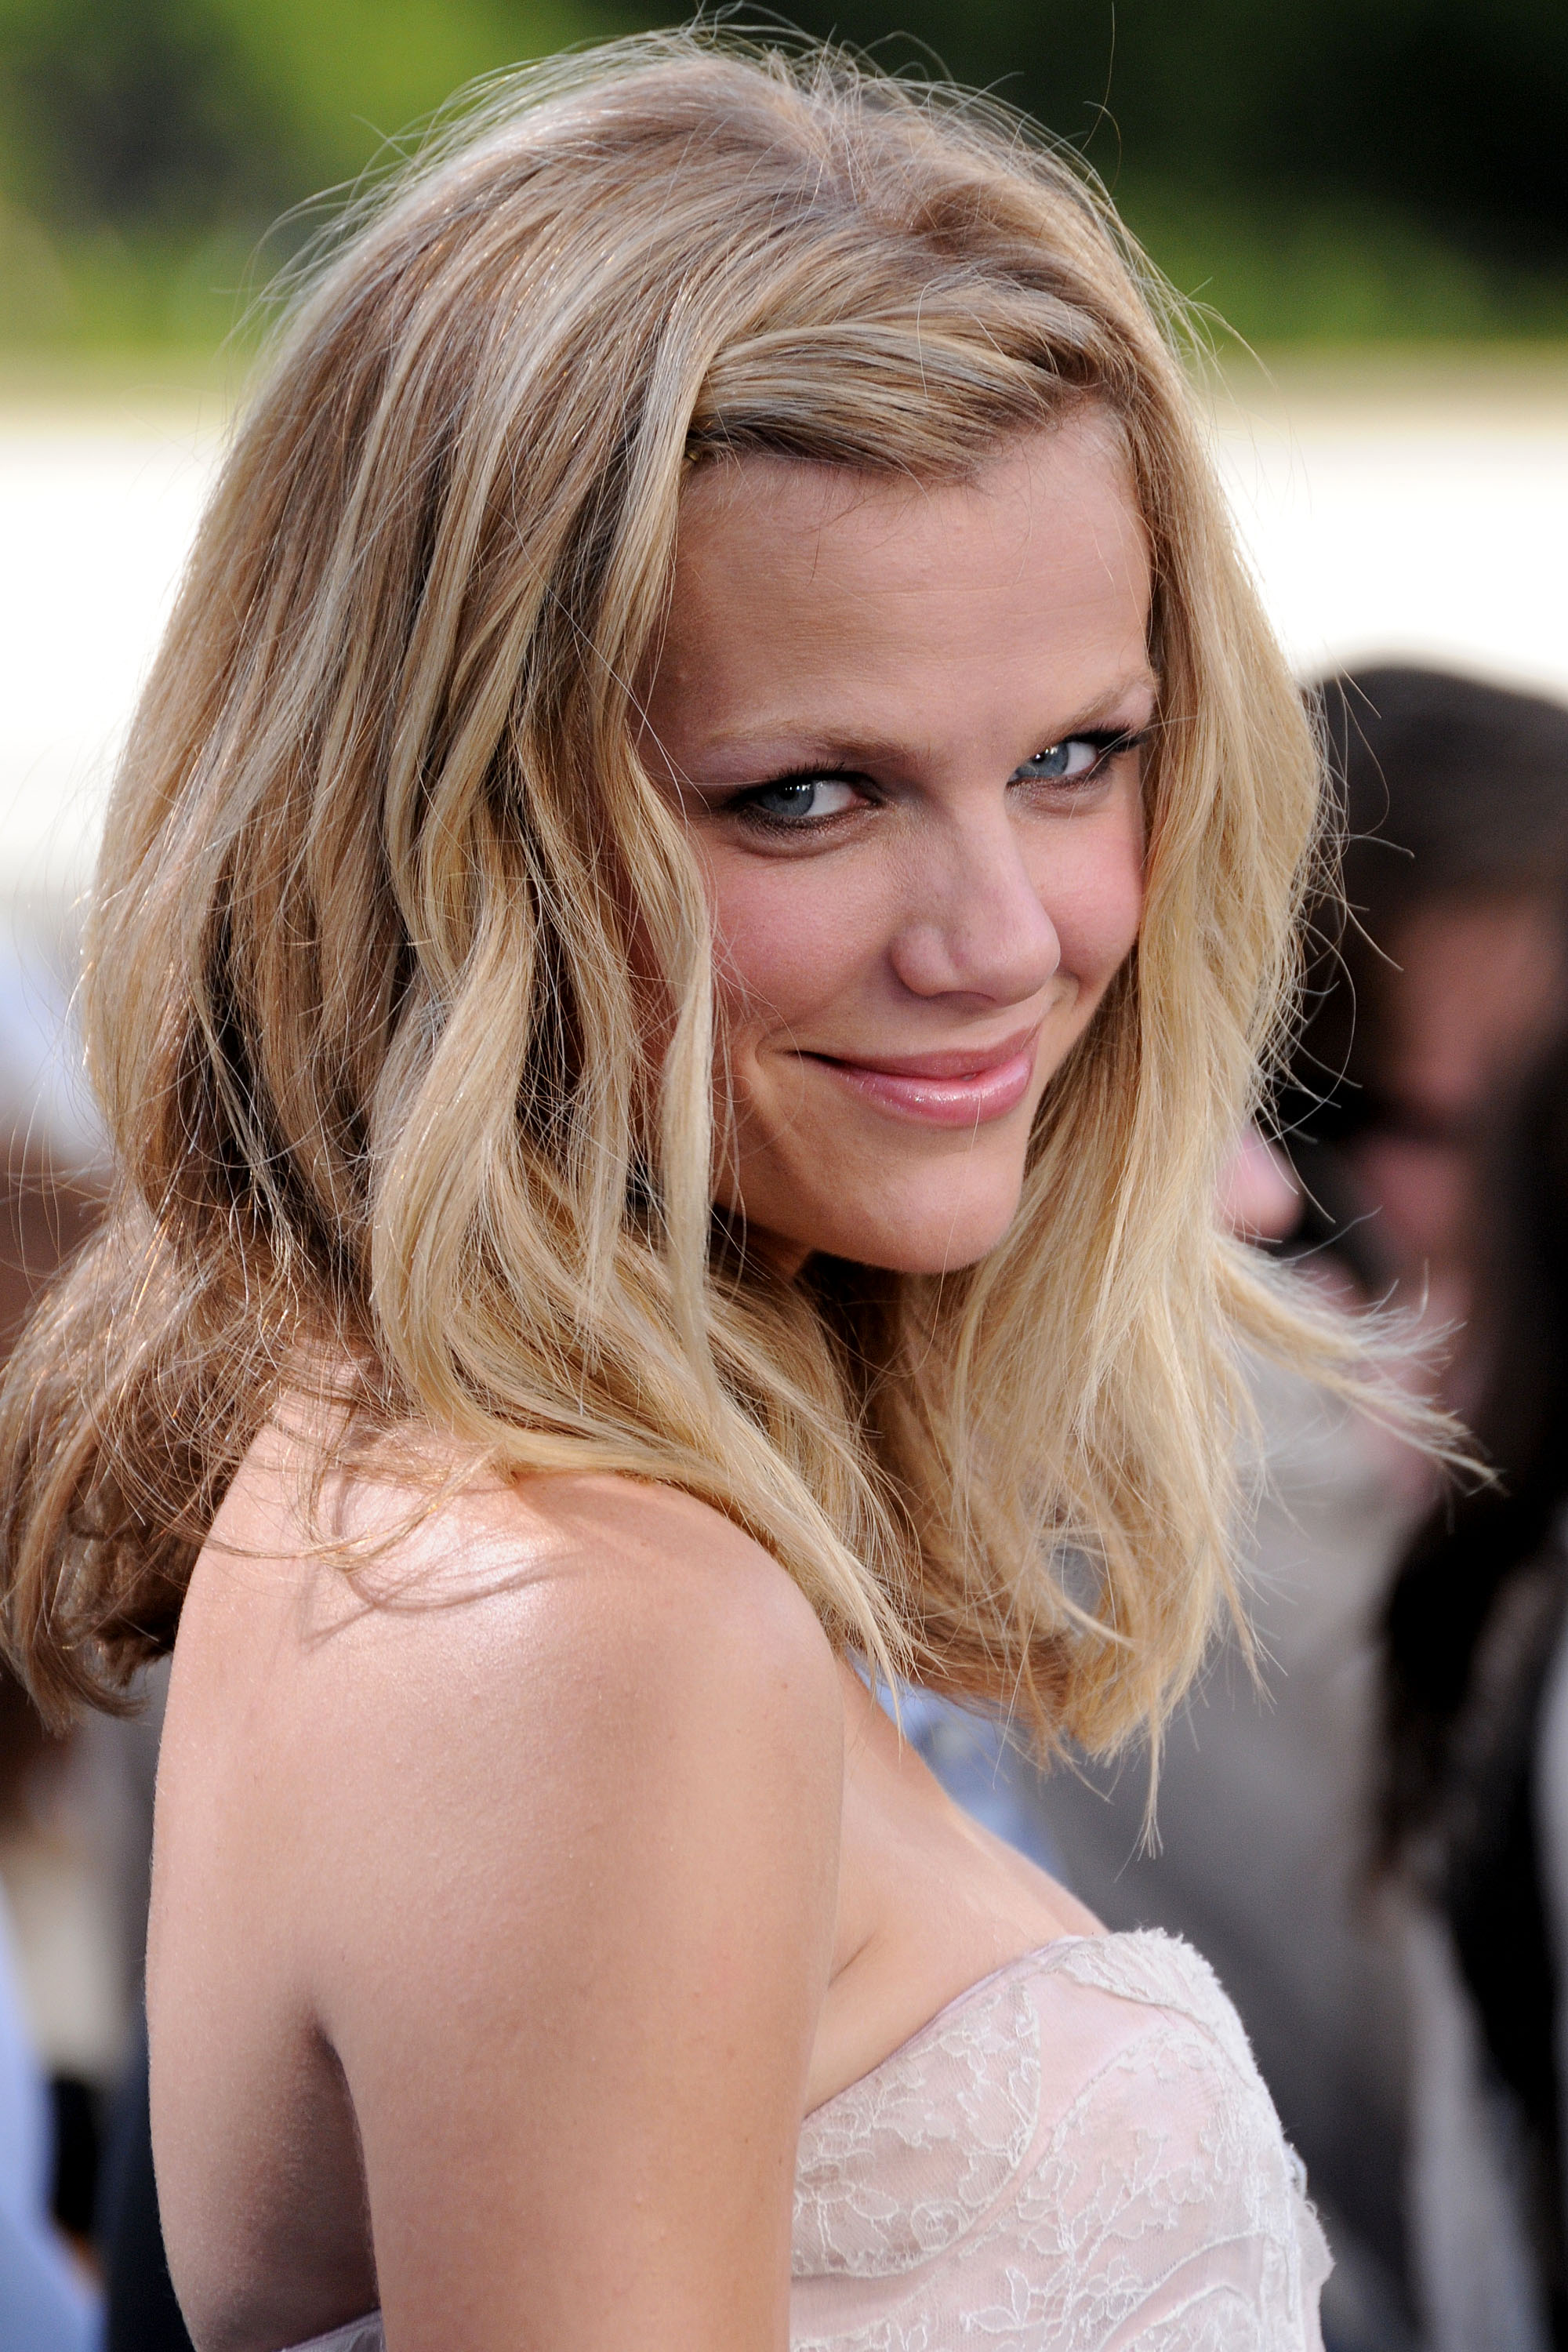 Brooklyn Decker photo 392 of 622 pics, wallpaper - photo ... Brooklyn Decker